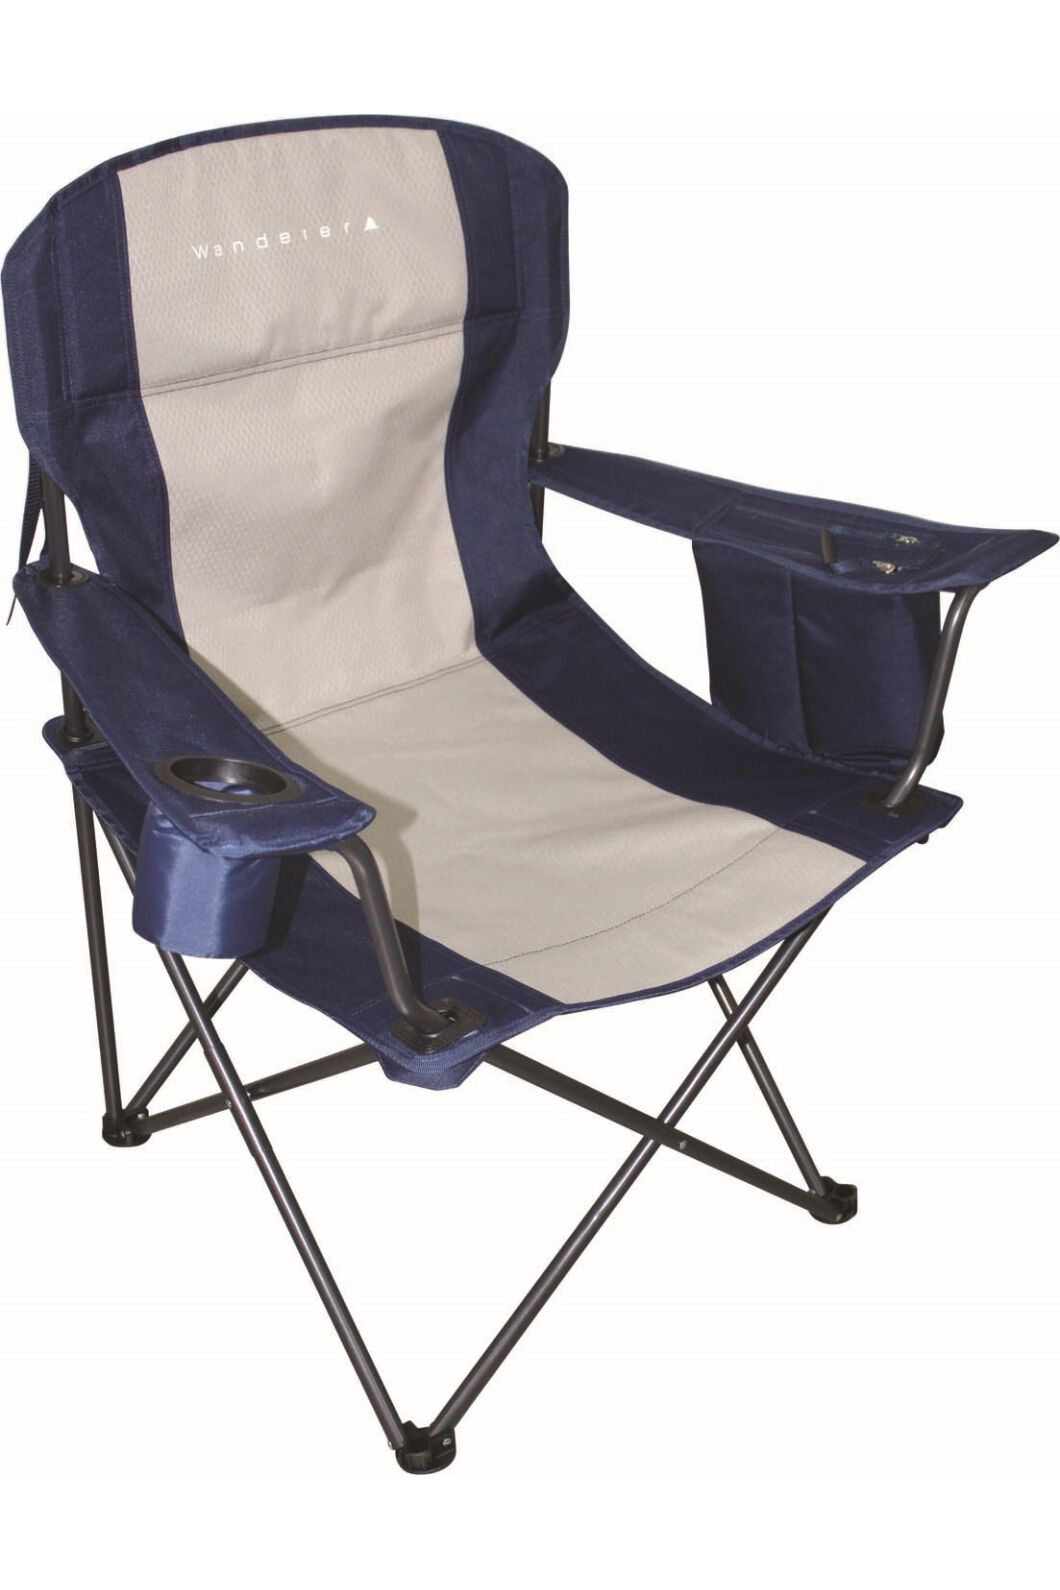 Wanderer Standard Cooler Arm Chair, None, hi-res